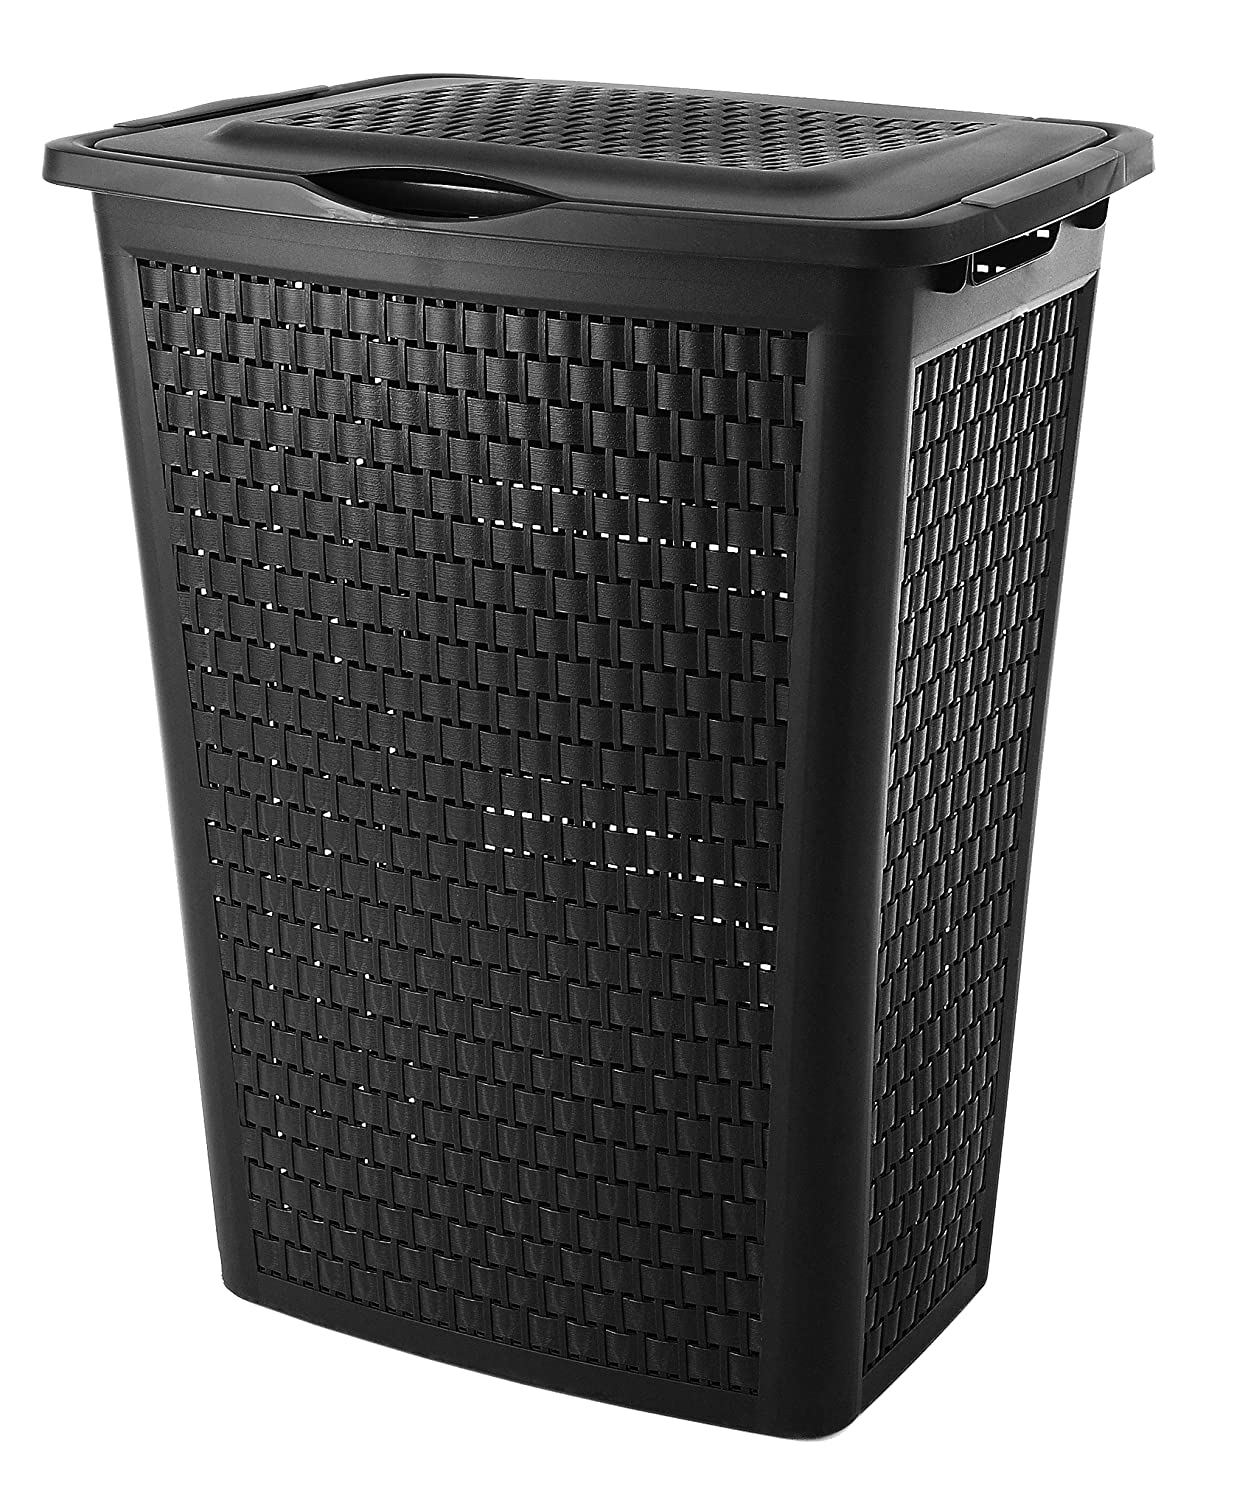 50 L Laundry Hamper with Handles